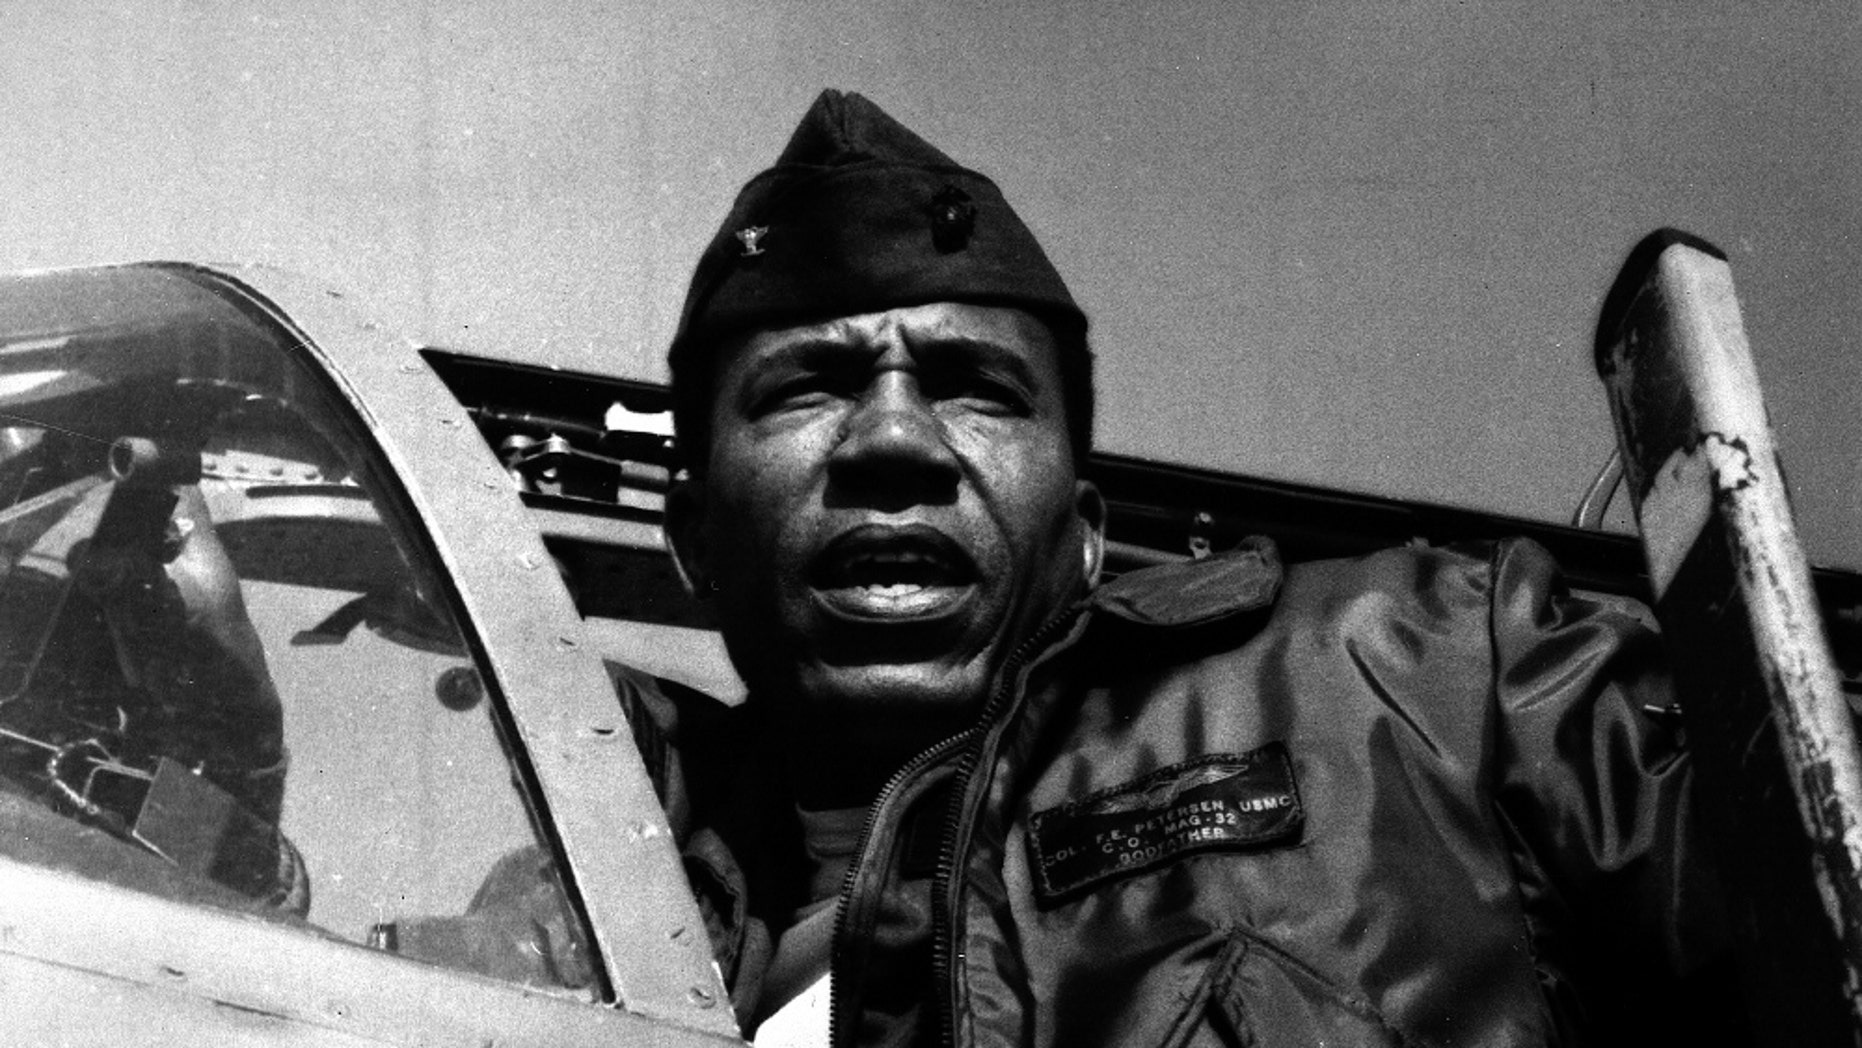 This undated photo provided by the Marine Corps shows Lt. Gen. Frank E. Petersen, Jr., the first black aviator and brigadier general in Marine Corps. Frank E. Petersen III said his father died Tuesday, Aug. 25, 2015, at his home in Stevensville, on Maryland's Kent Island, of complications from lung cancer. He was 83. (Marine Corps via AP)